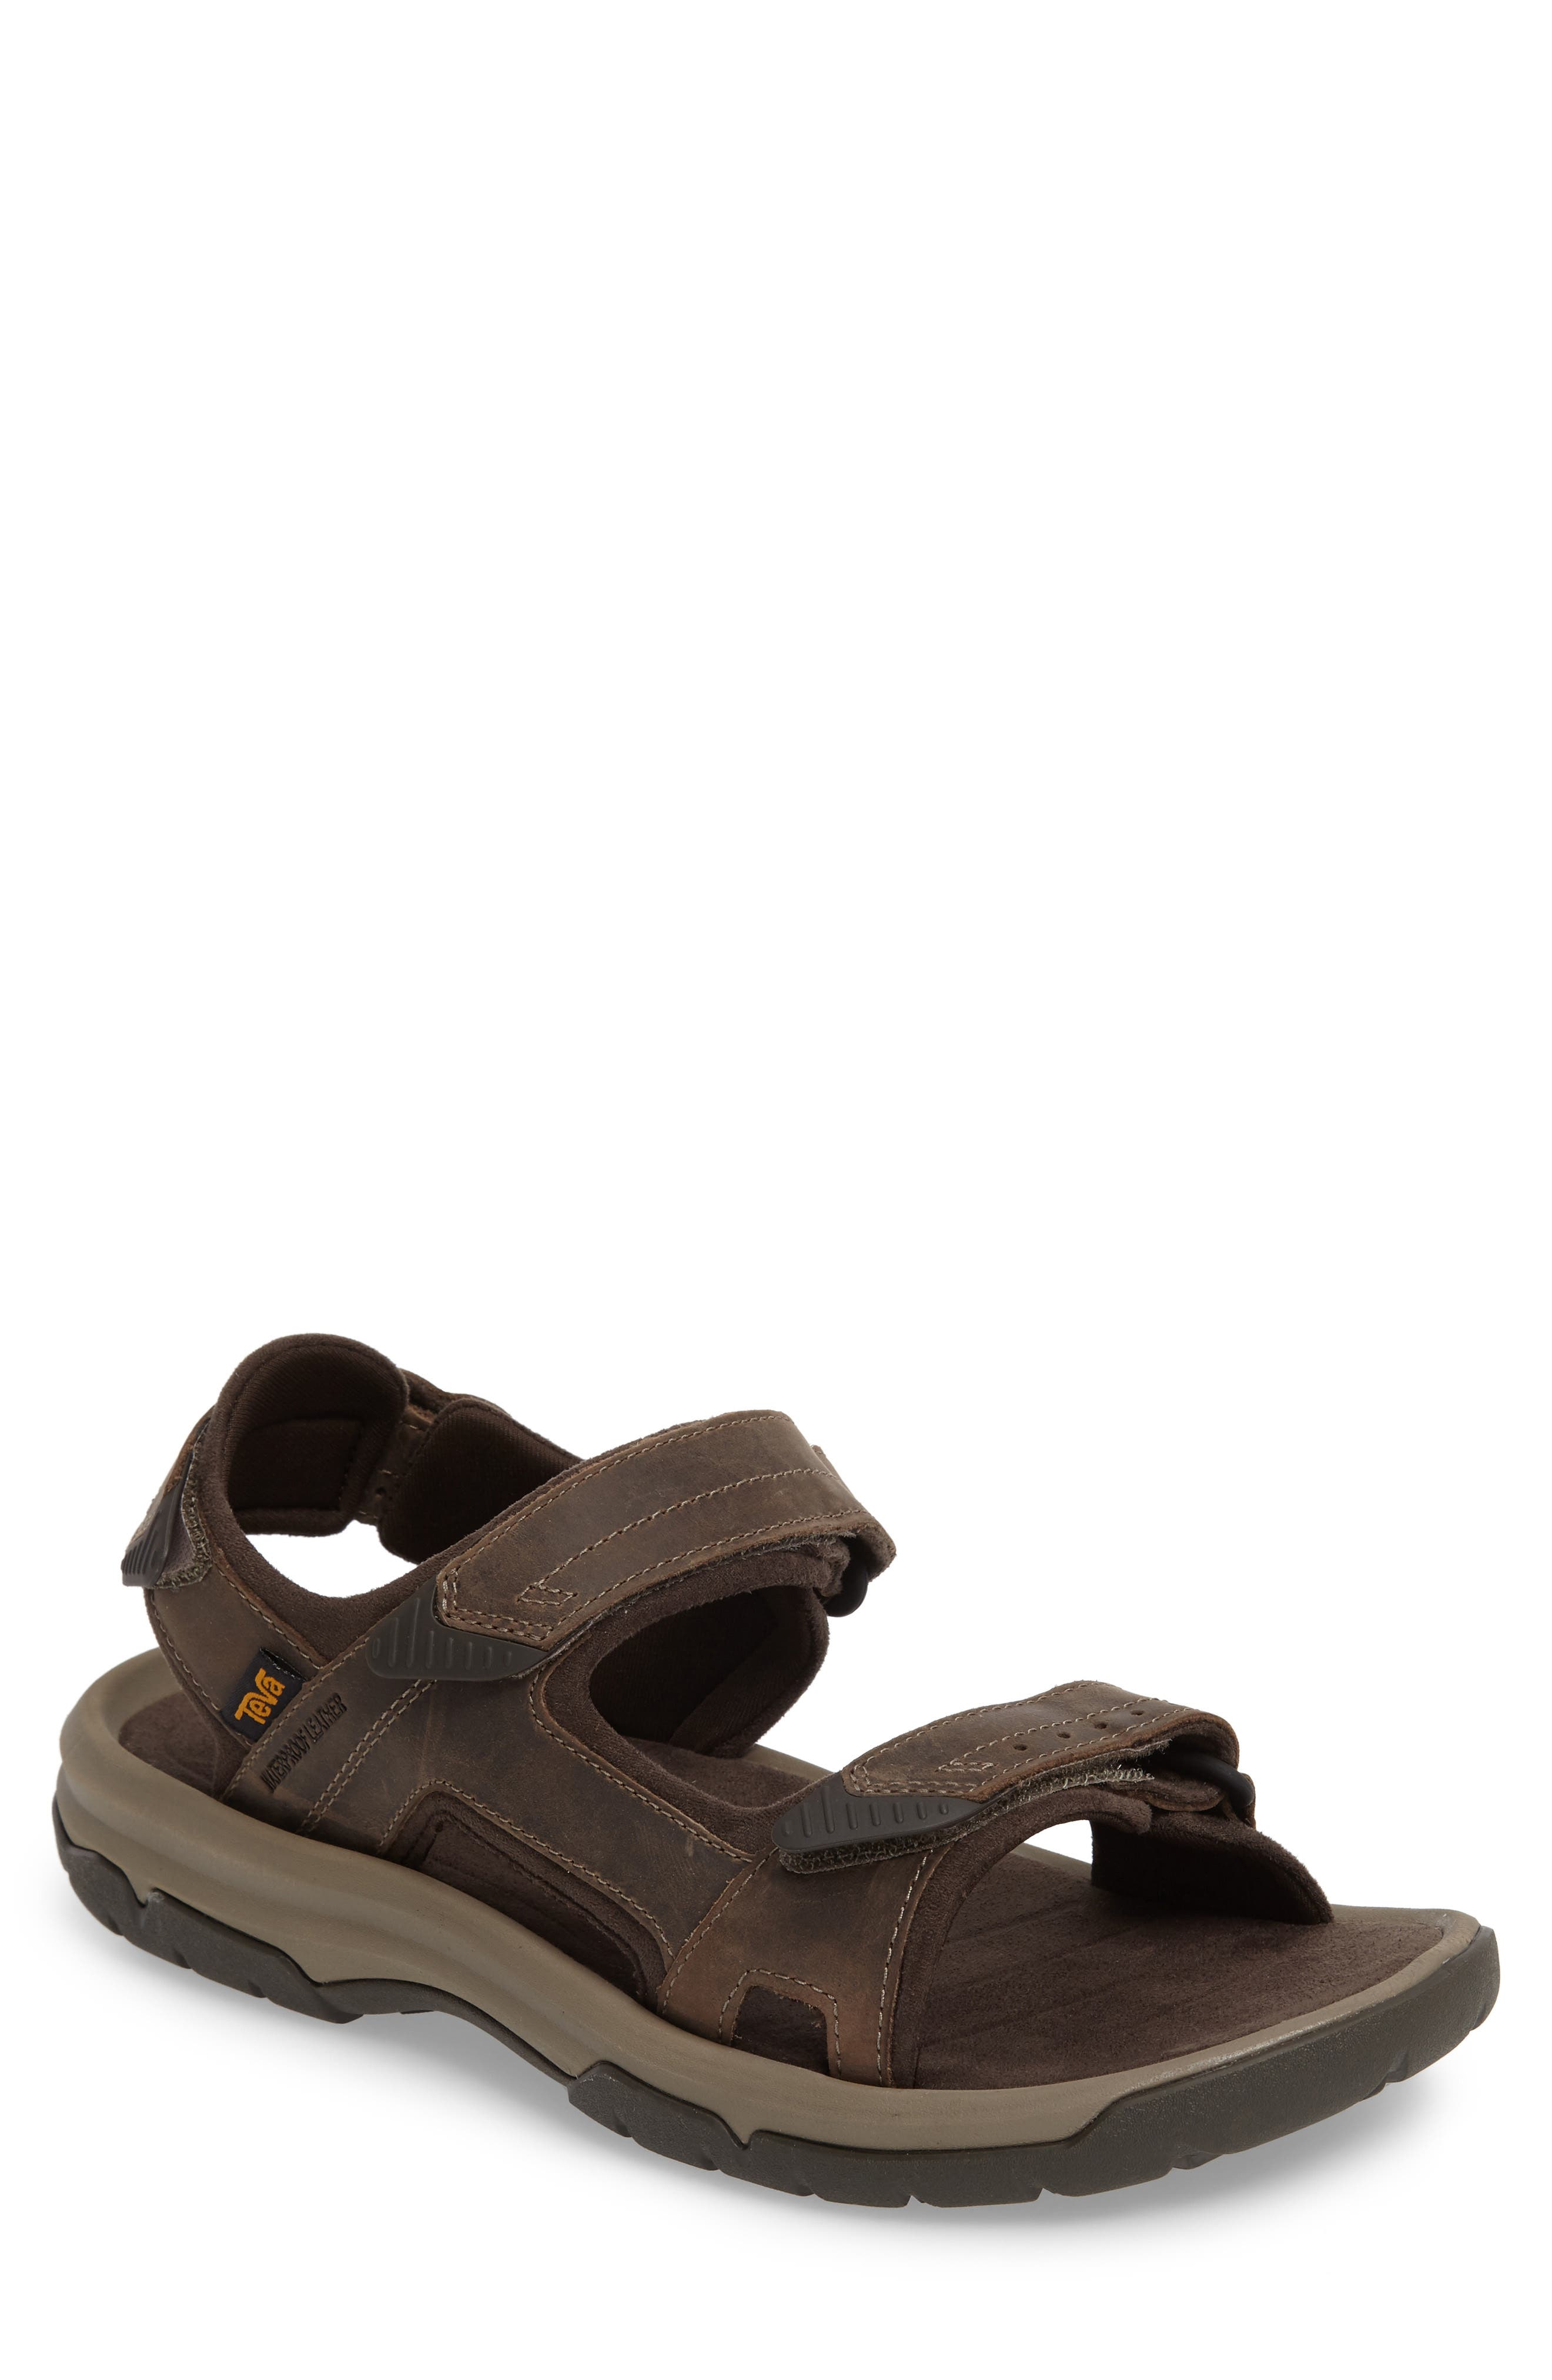 Langdon Sandal,                         Main,                         color, Walnut